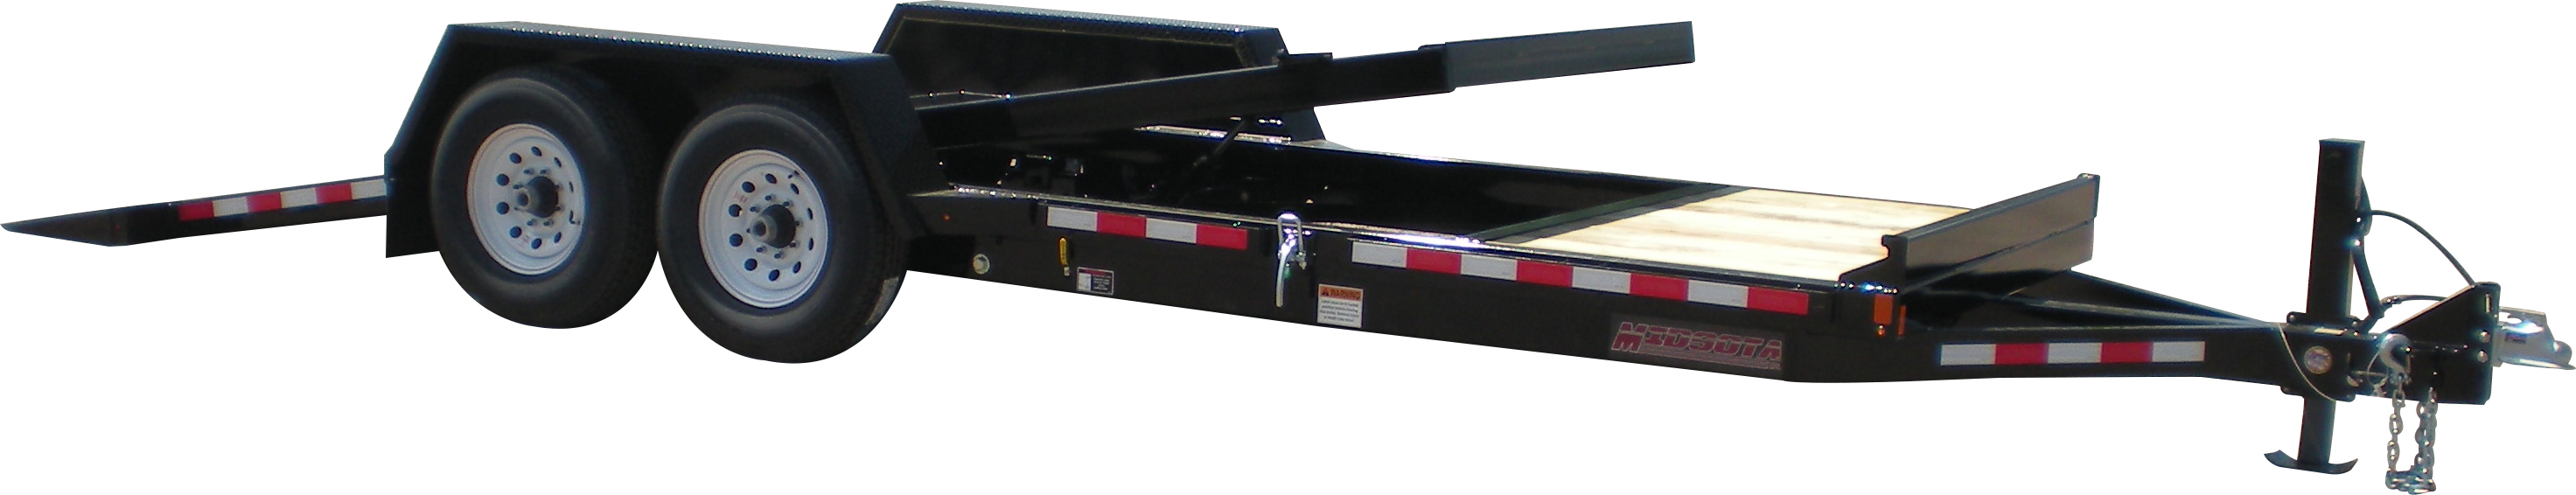 small resolution of  cherokee trailers tilt bed trailers midsota manufacturing midsota trailer wiring diagram on h h trailers roadrunner trailers